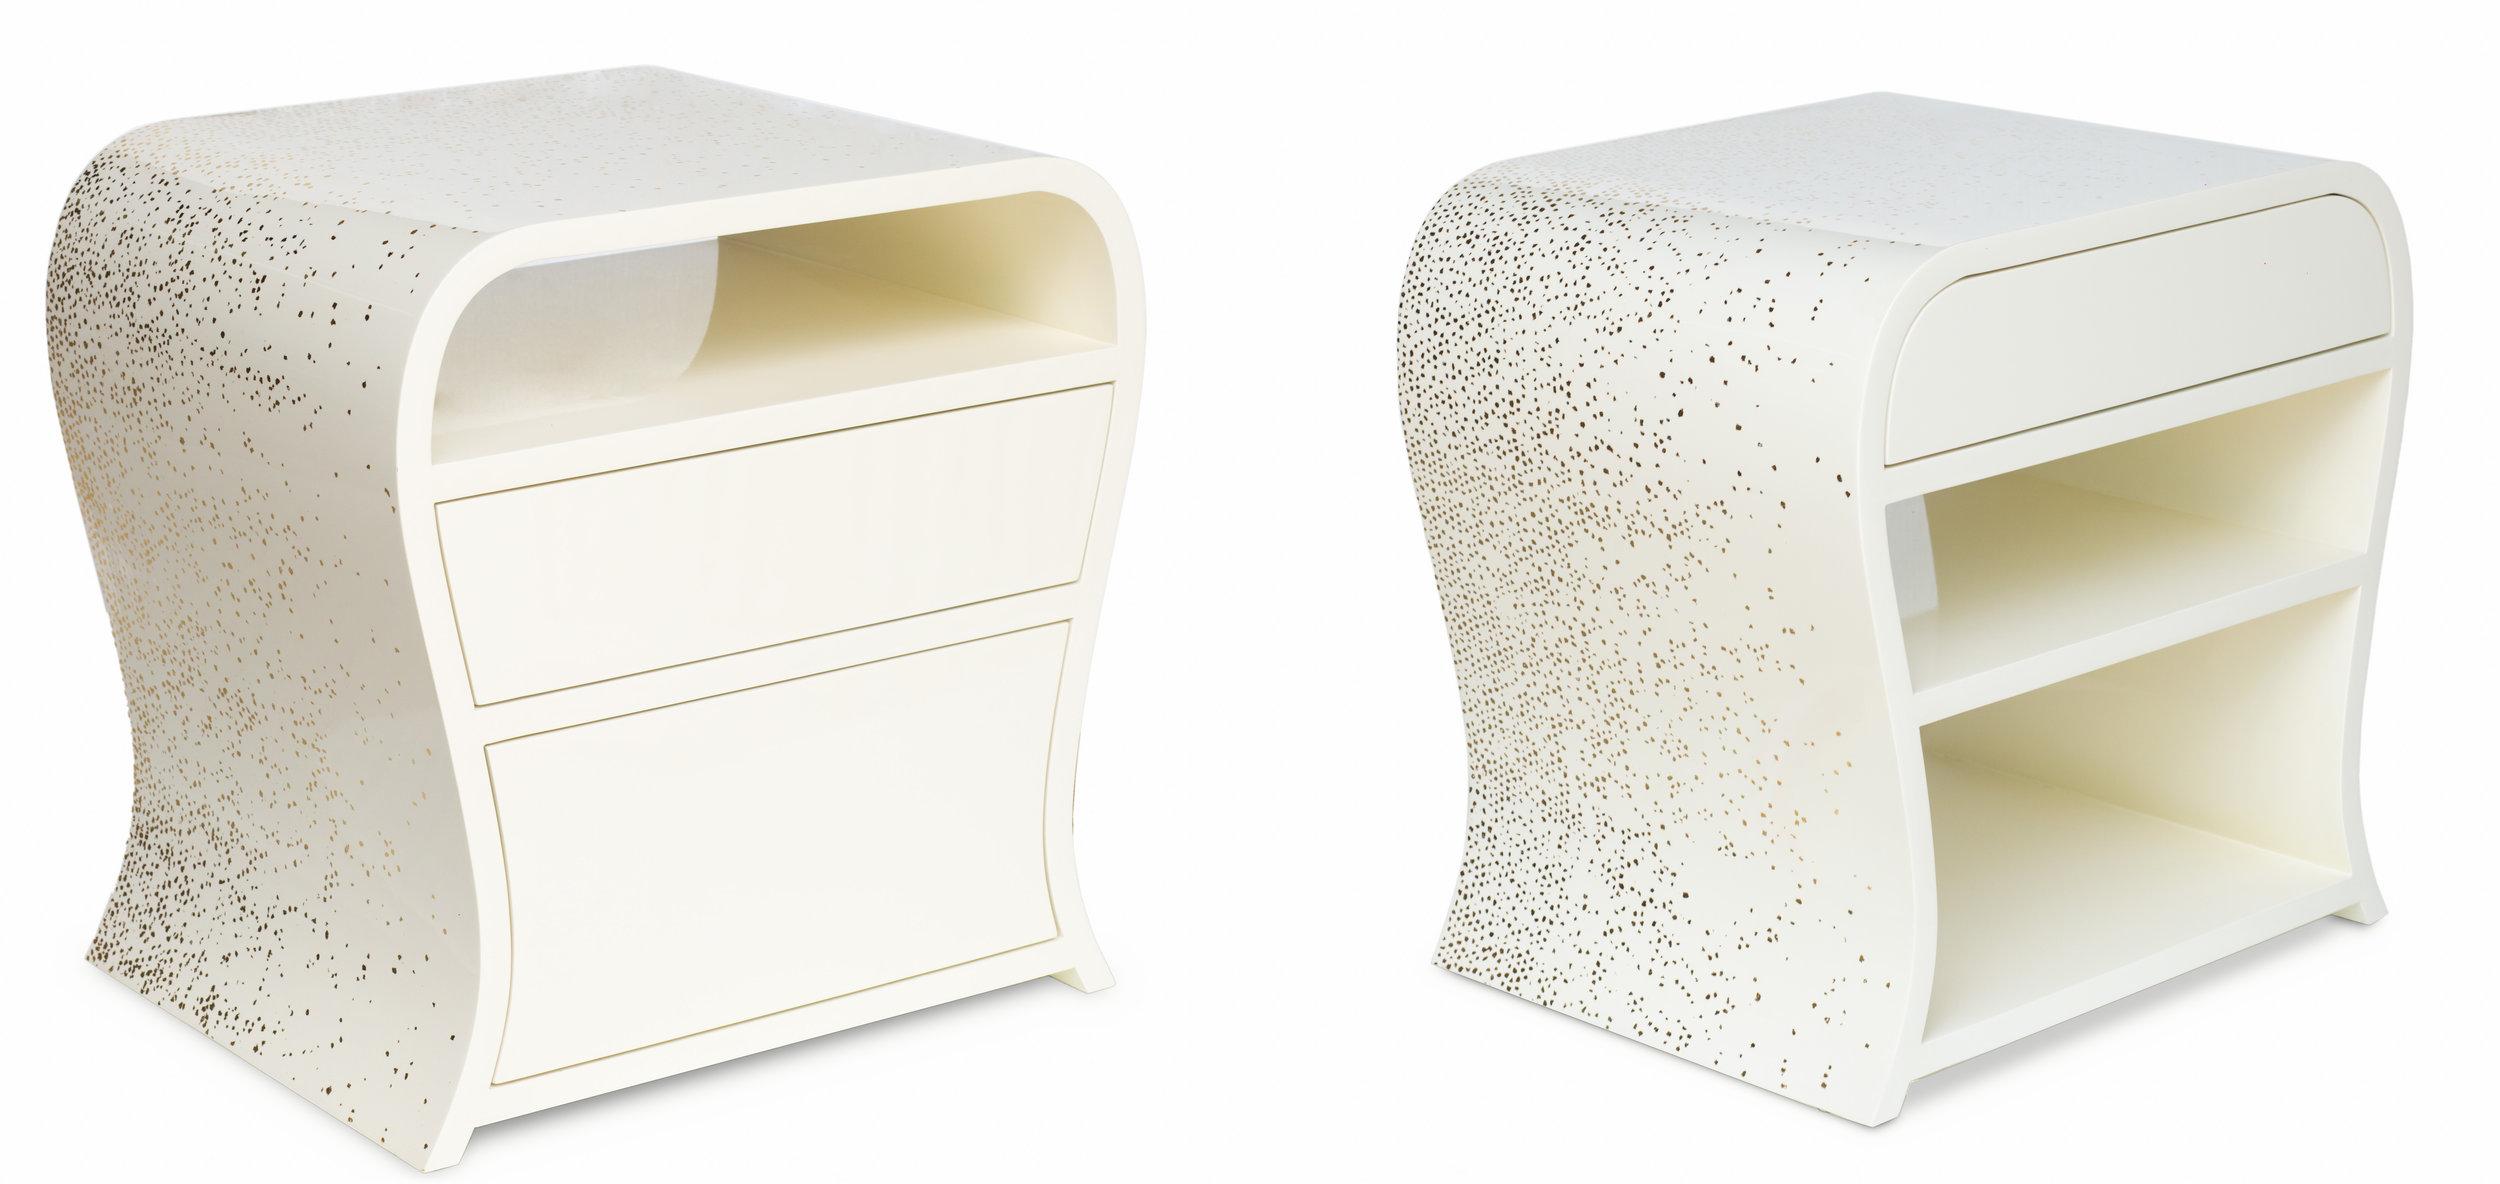 2-edna-nightstands.jpg